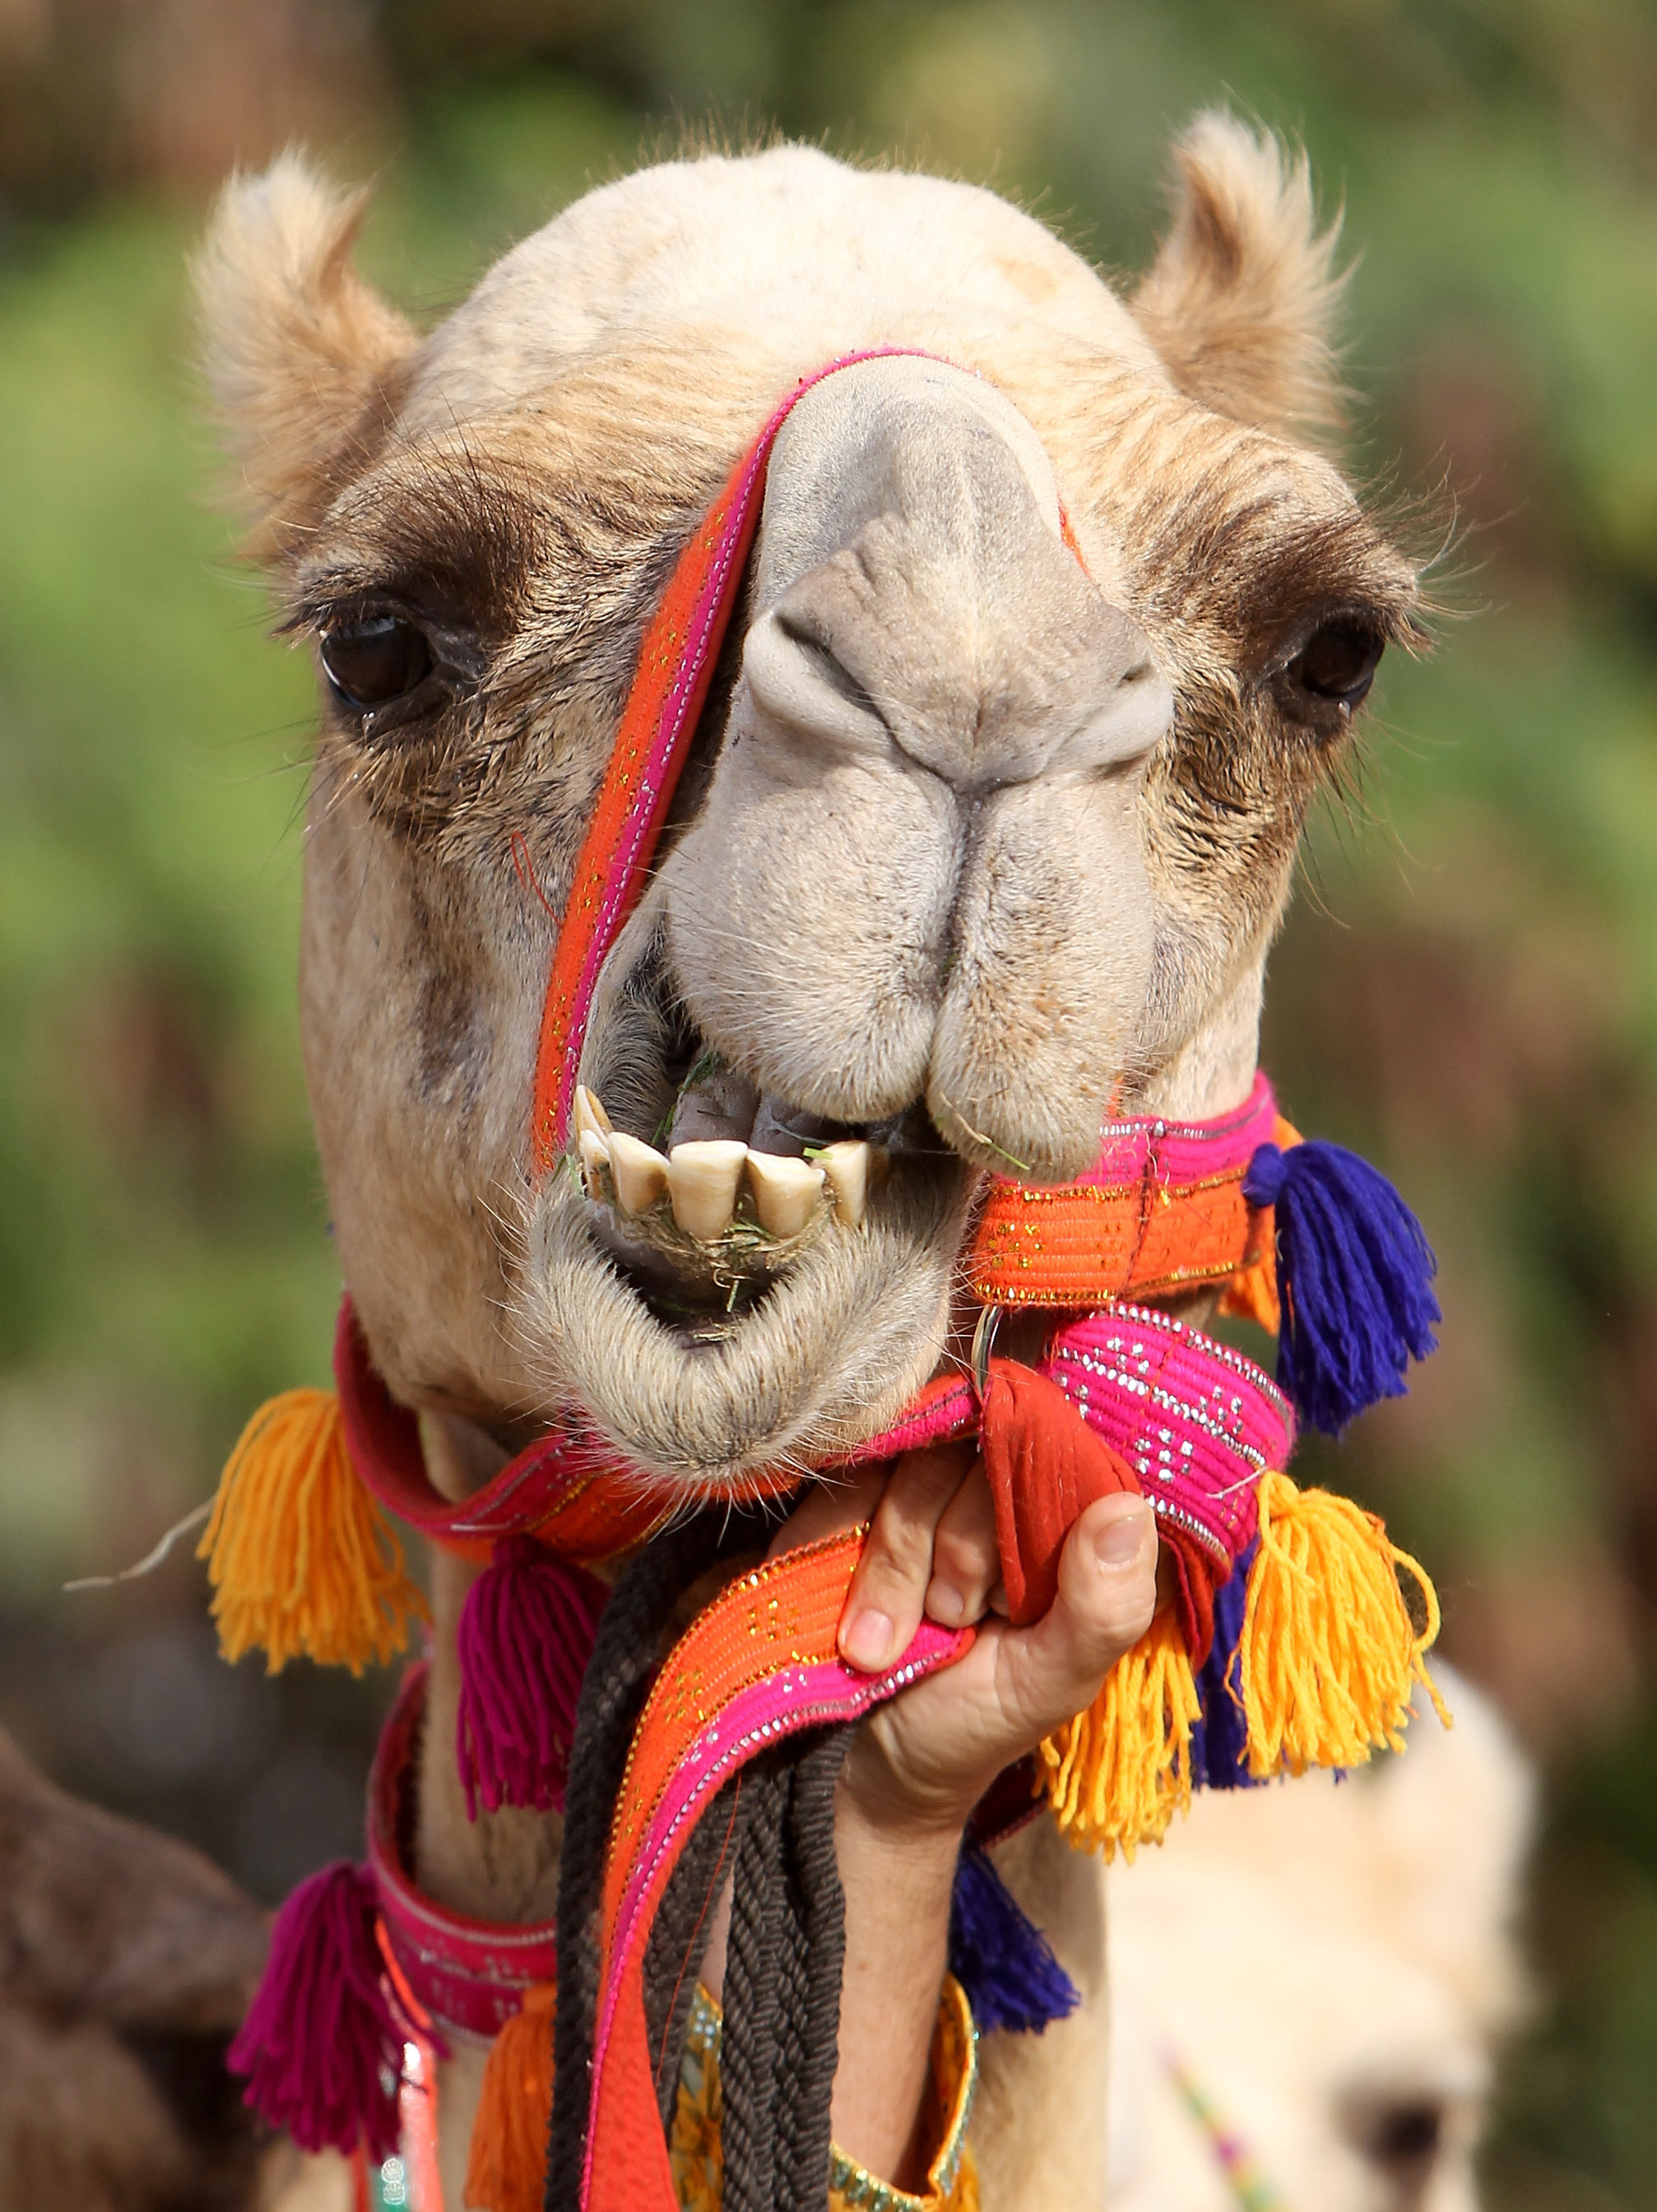 The camel's bushy eyebrows and double-set of lashes protect its eyes from sandstorms.